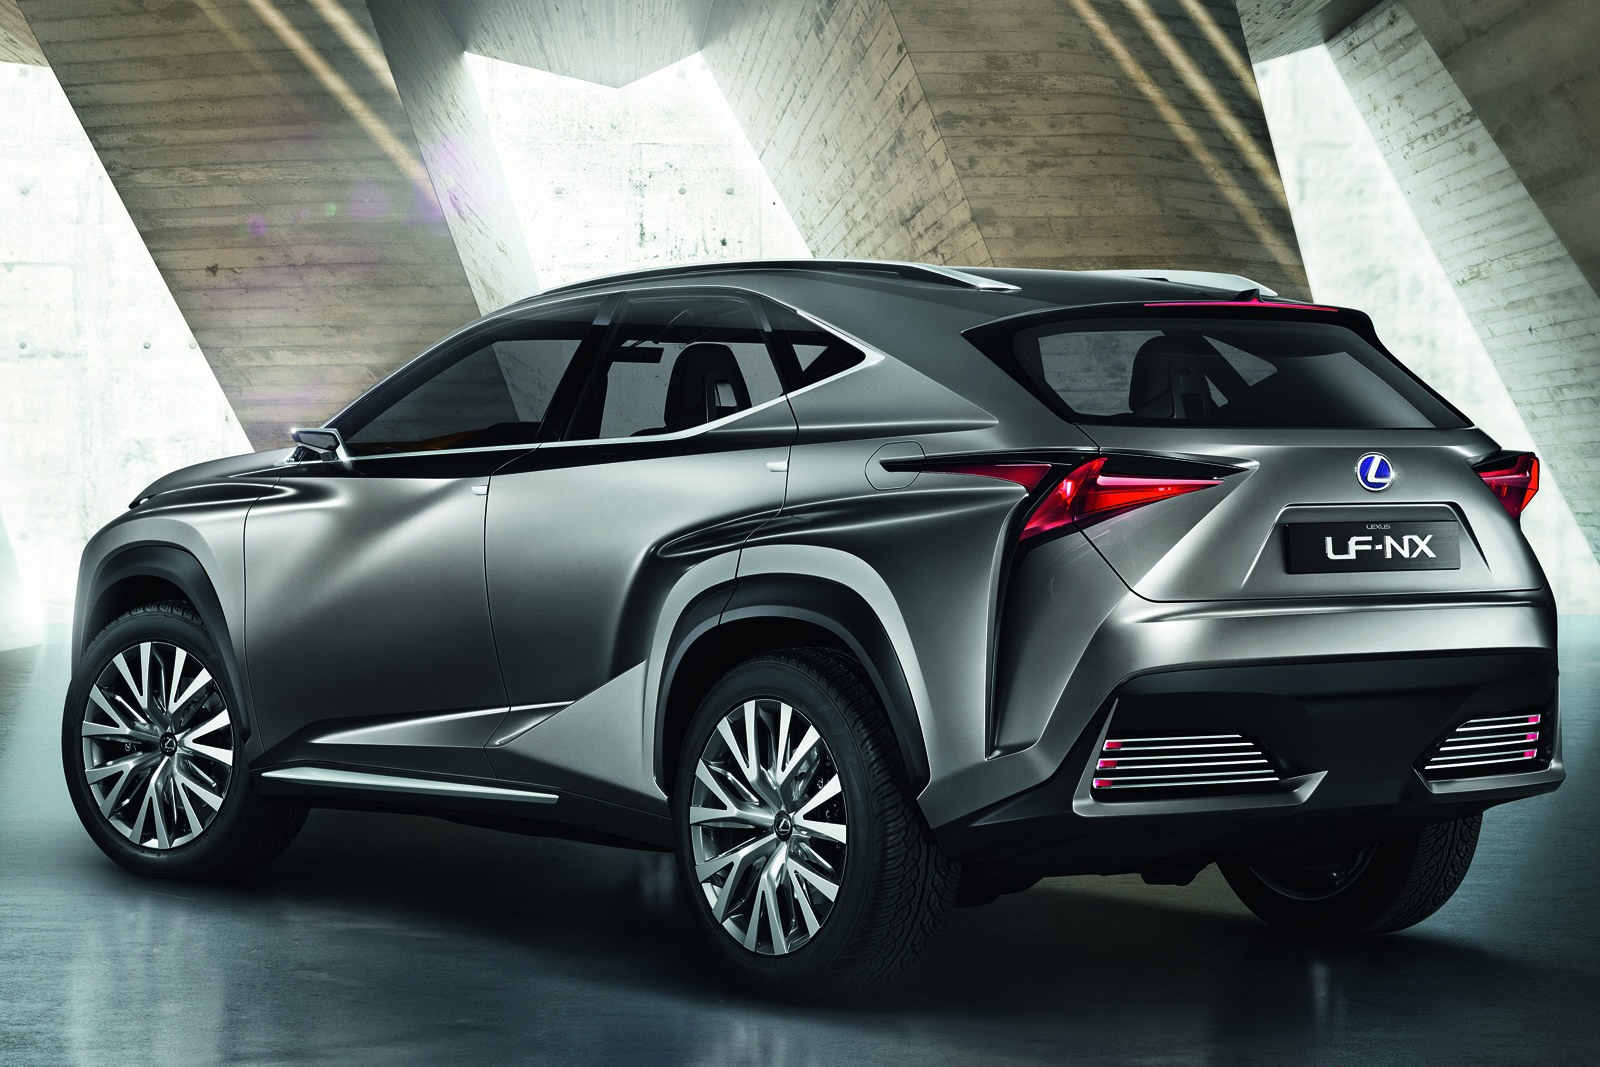 Published on October 30th, 2013 by Lexus Talk in Lexus Concepts